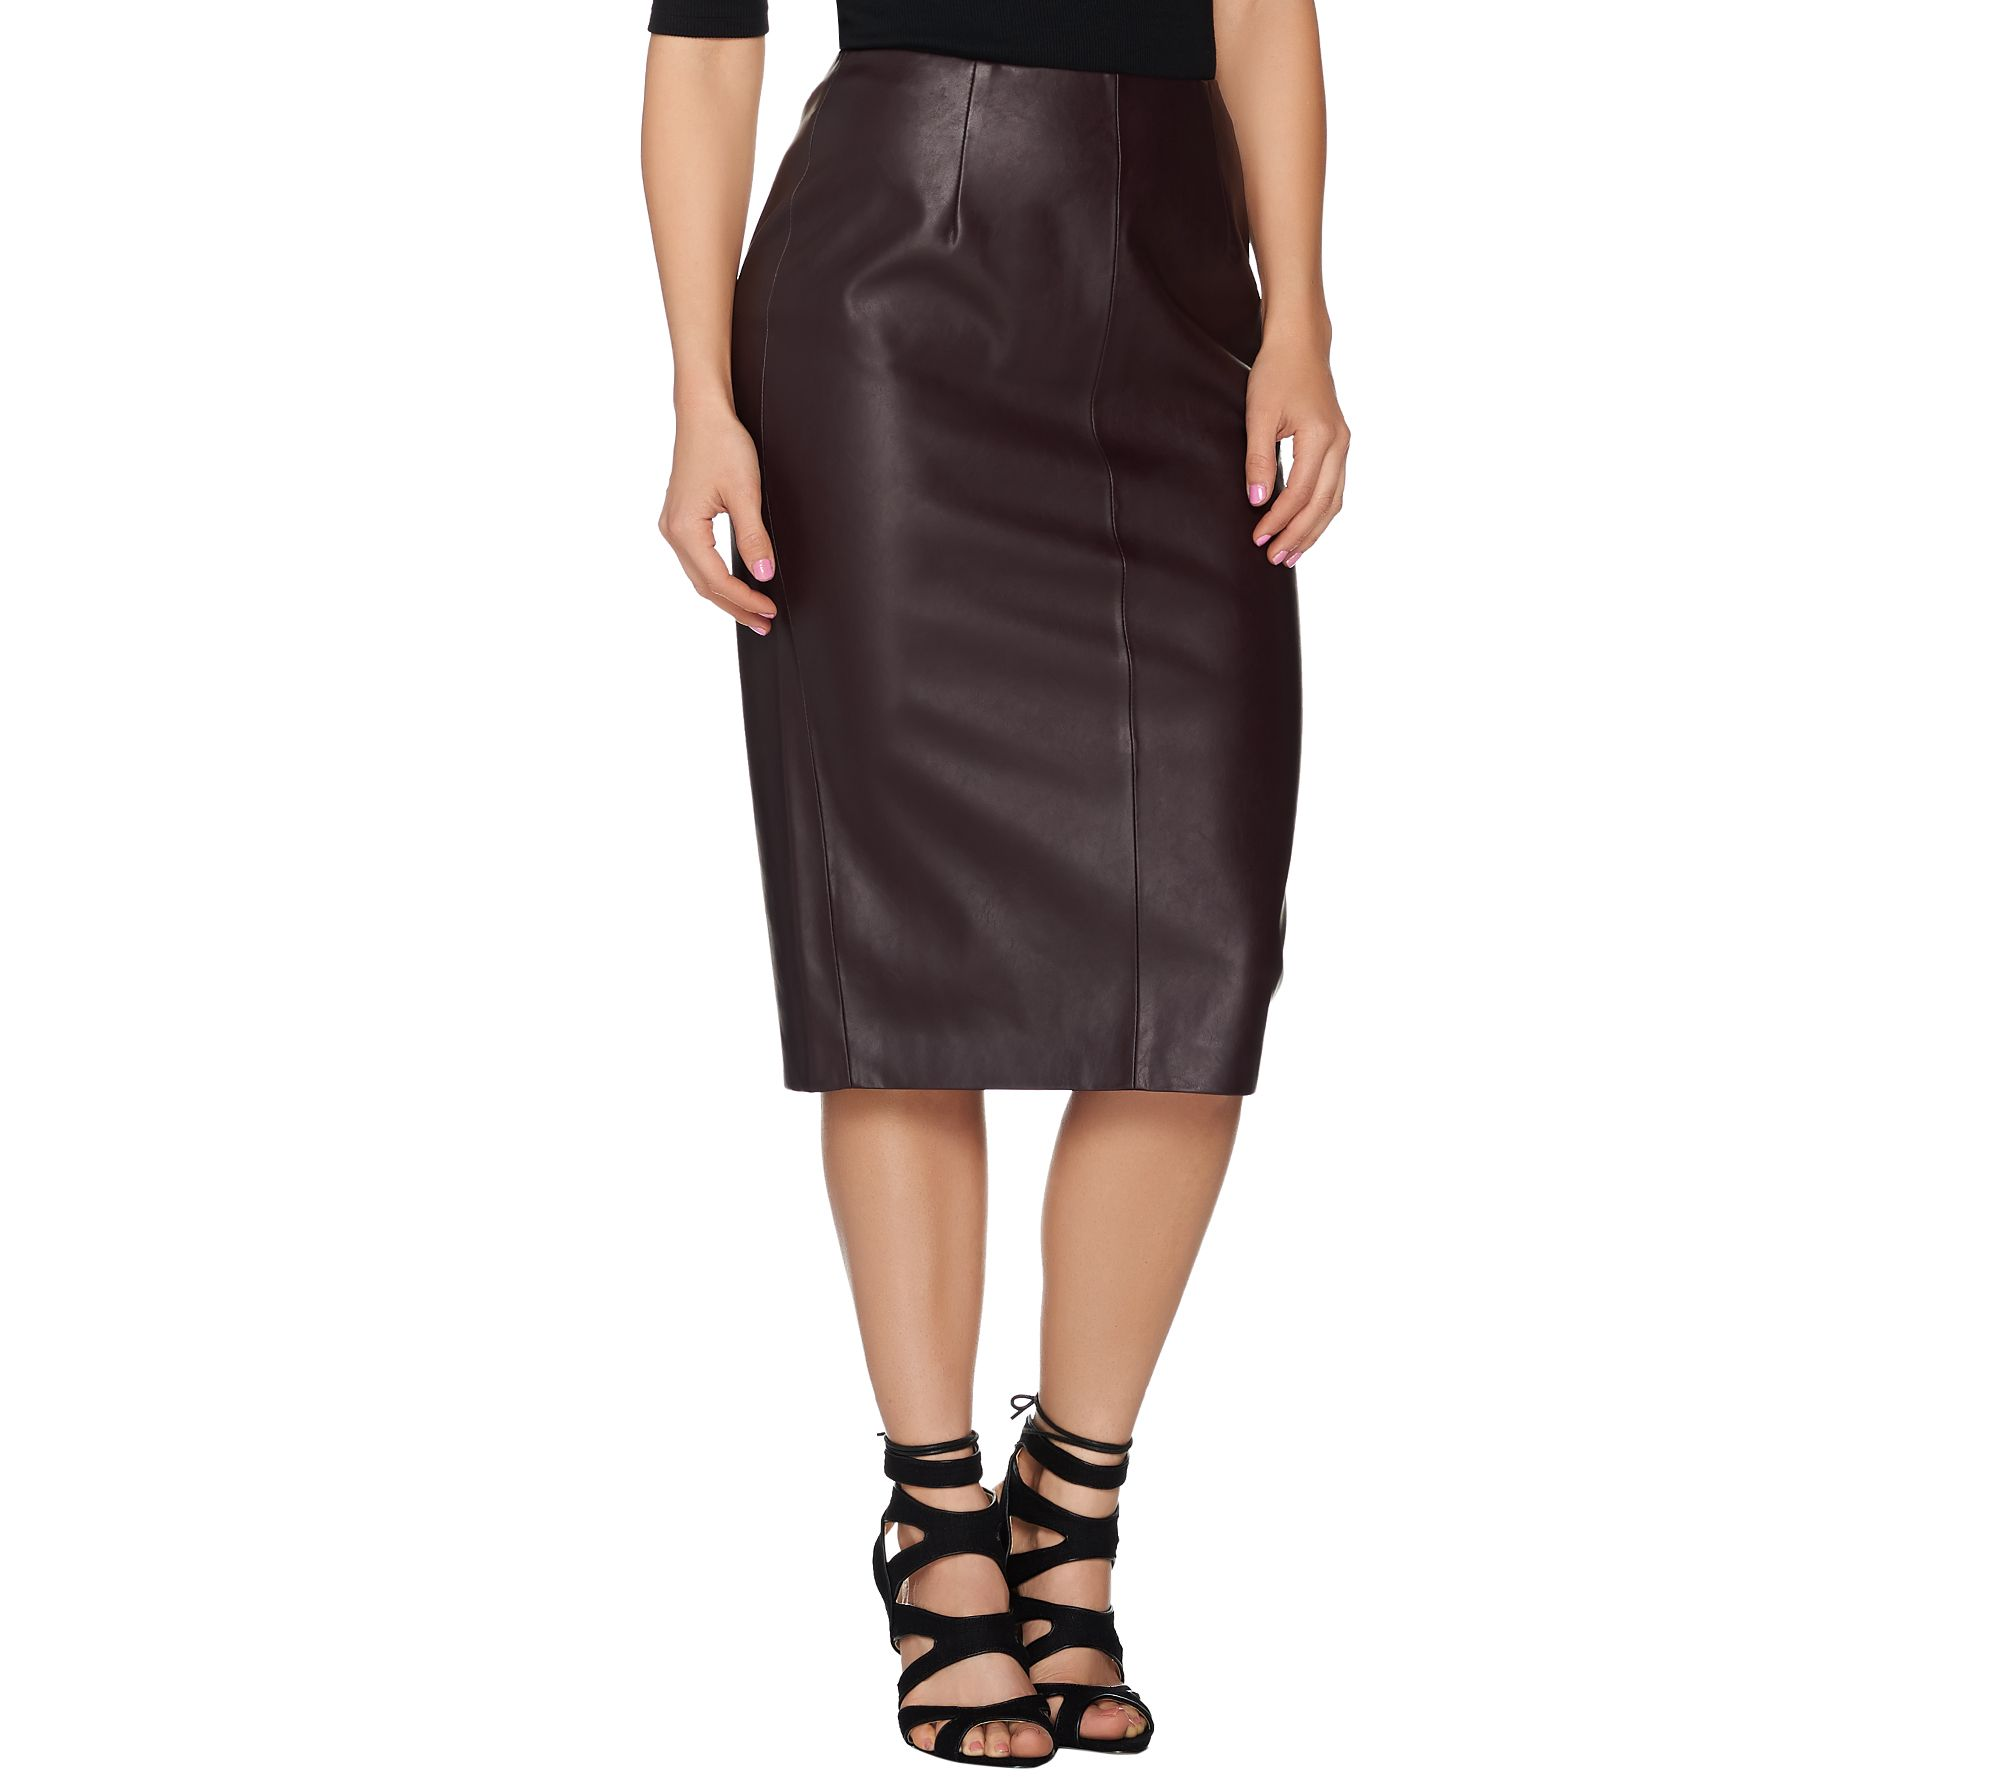 Skirts & Skorts — Dresses & Skirts — Fashion — QVC.com